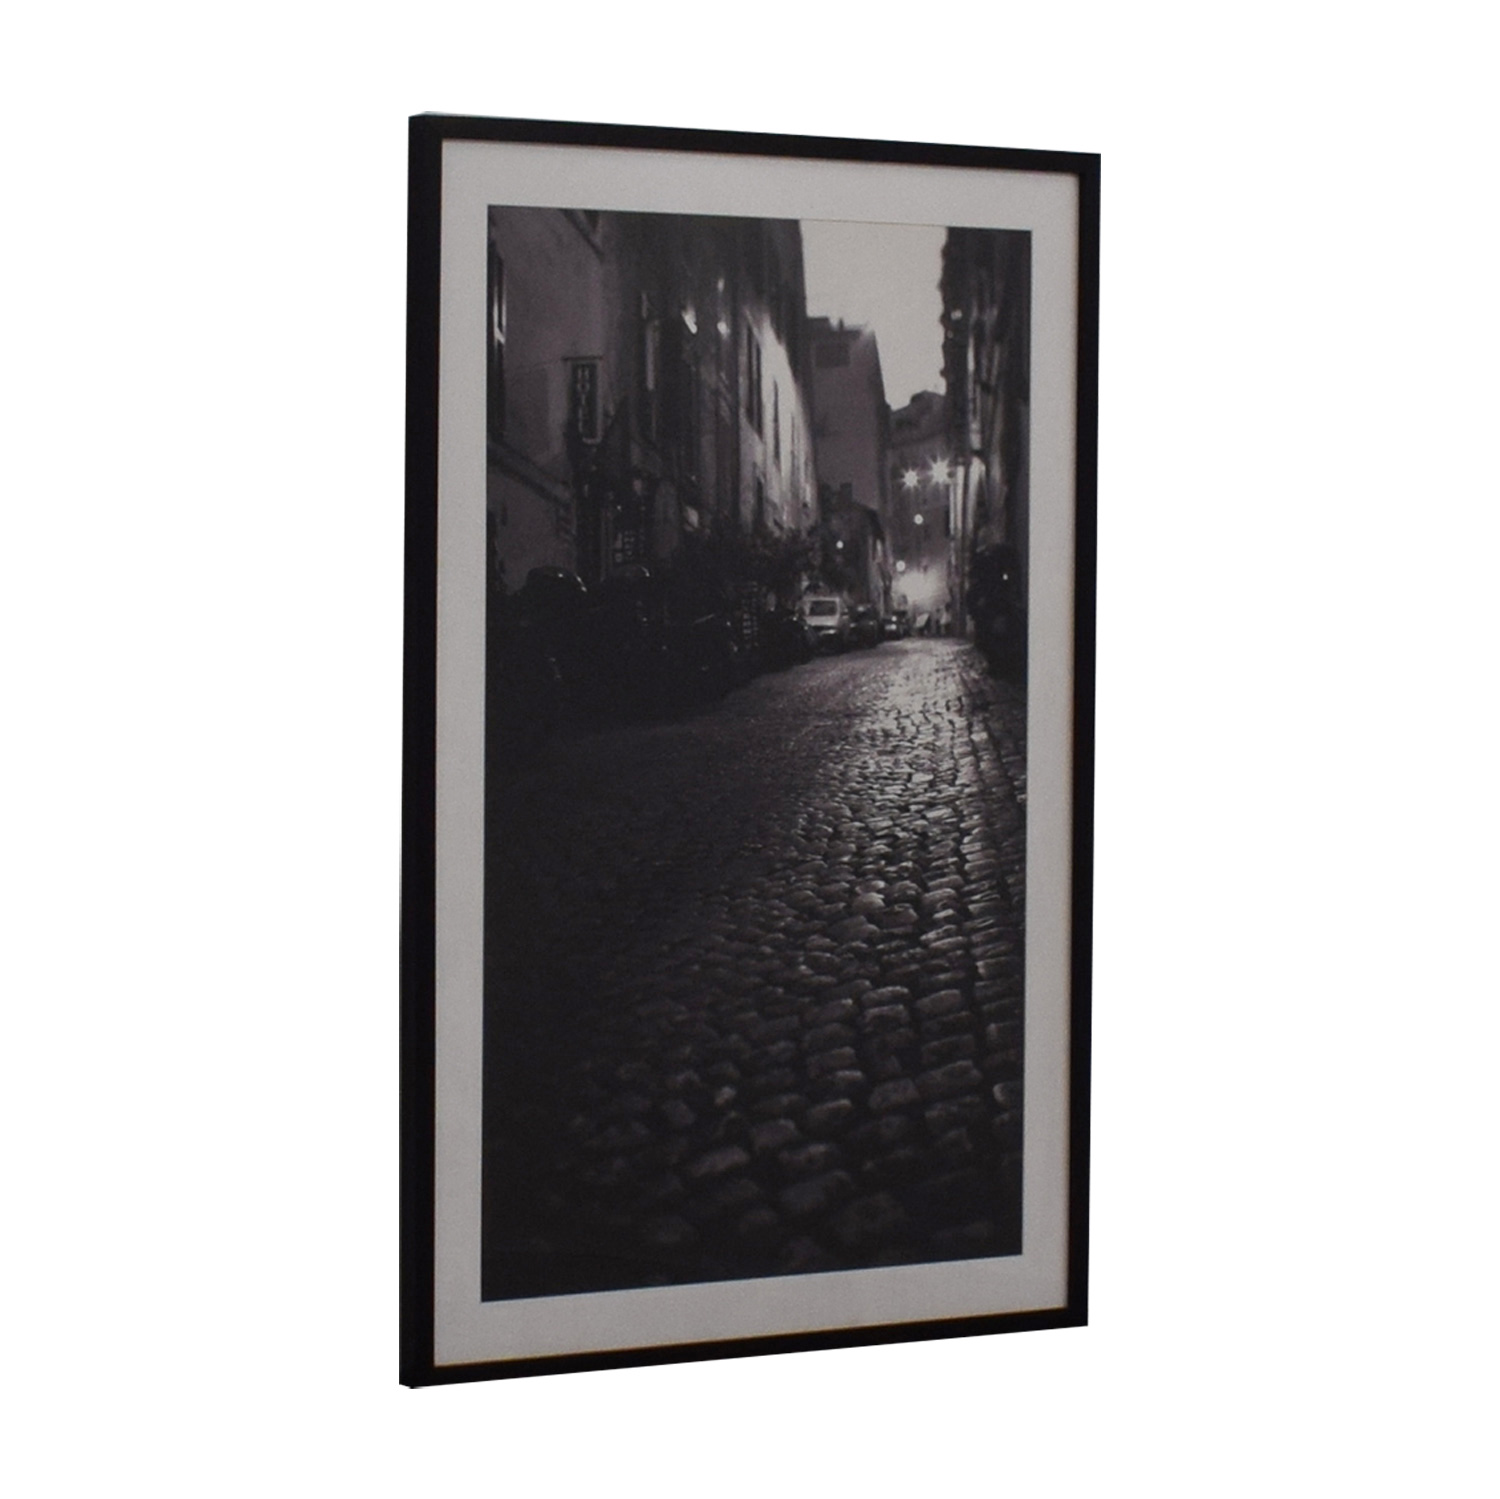 Pottery Barn Framed Photograph Cobblestone Street in Black and White sale